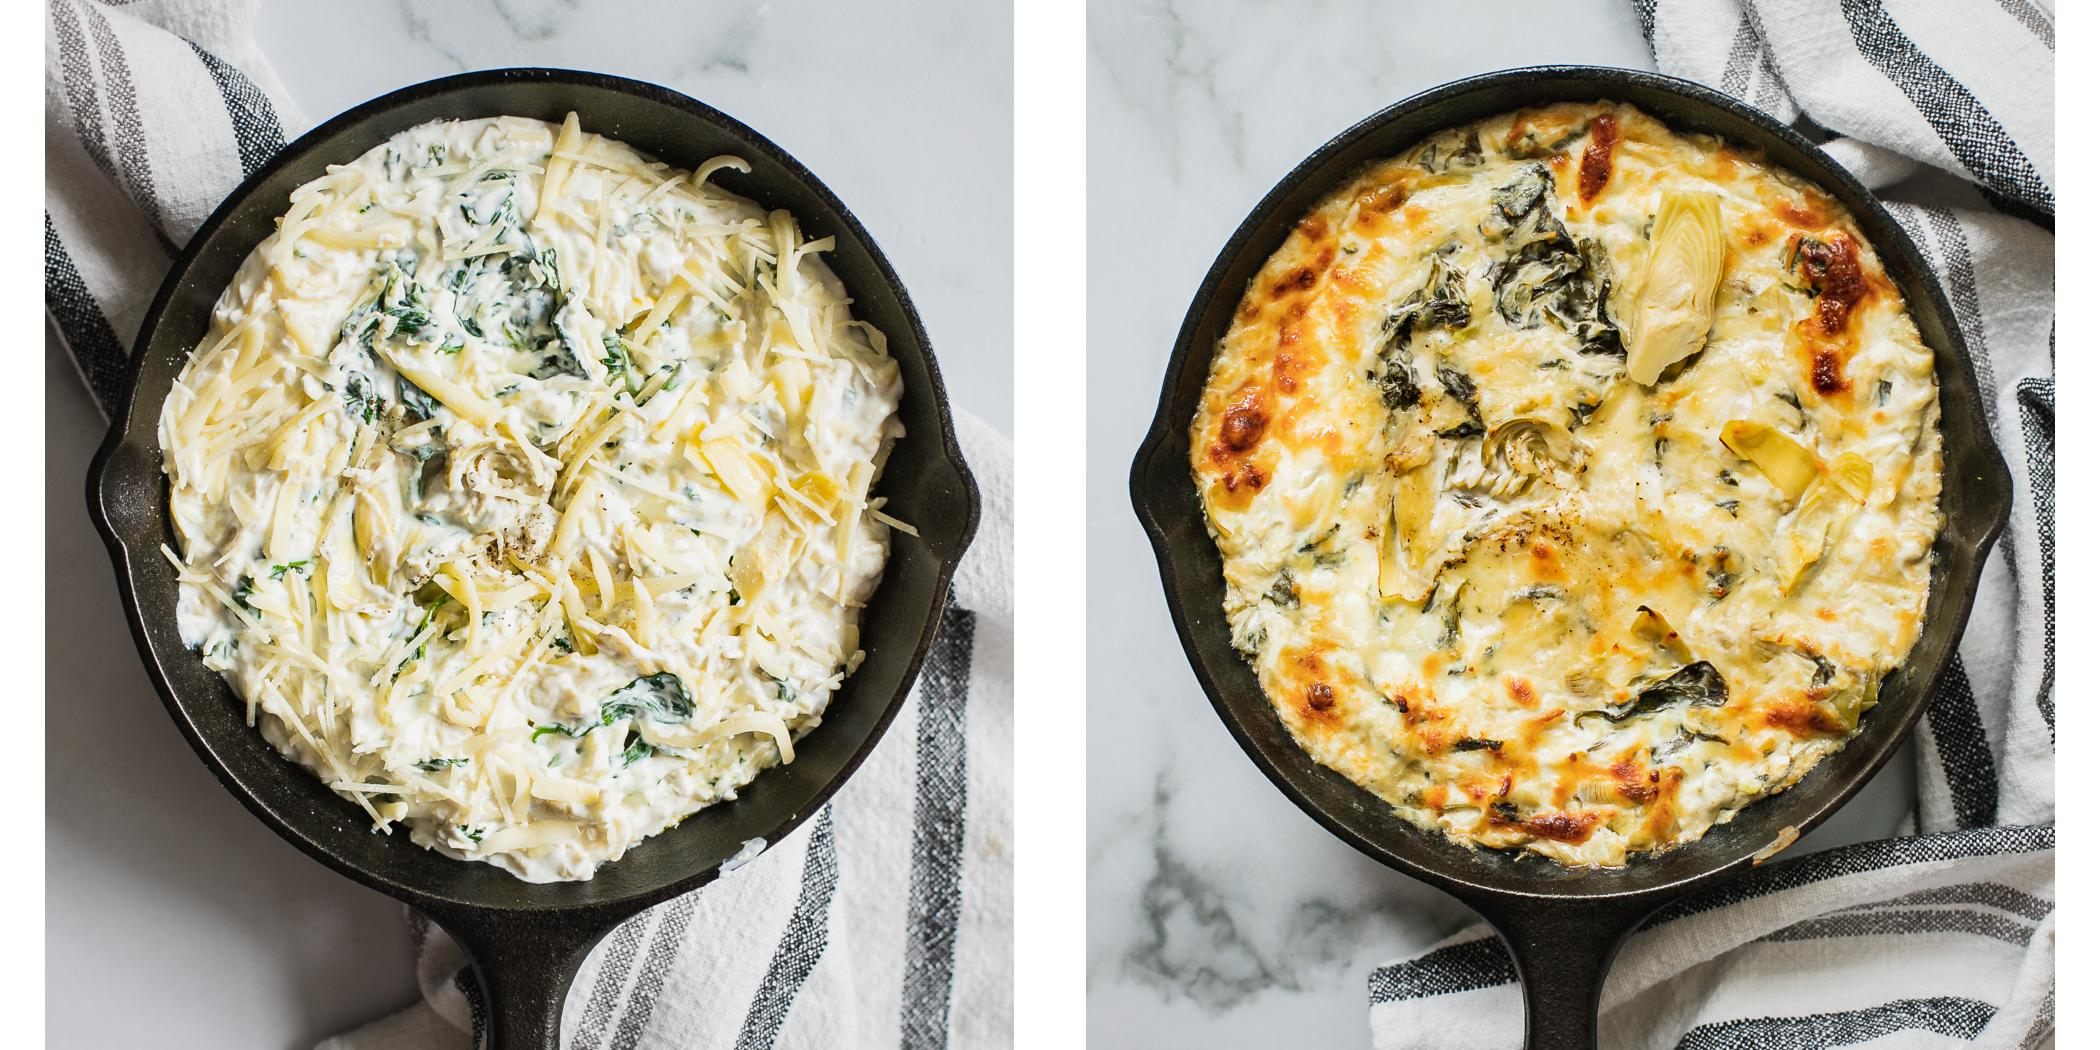 Before and After photo of ready for the oven and baked spinach artichoke dip.